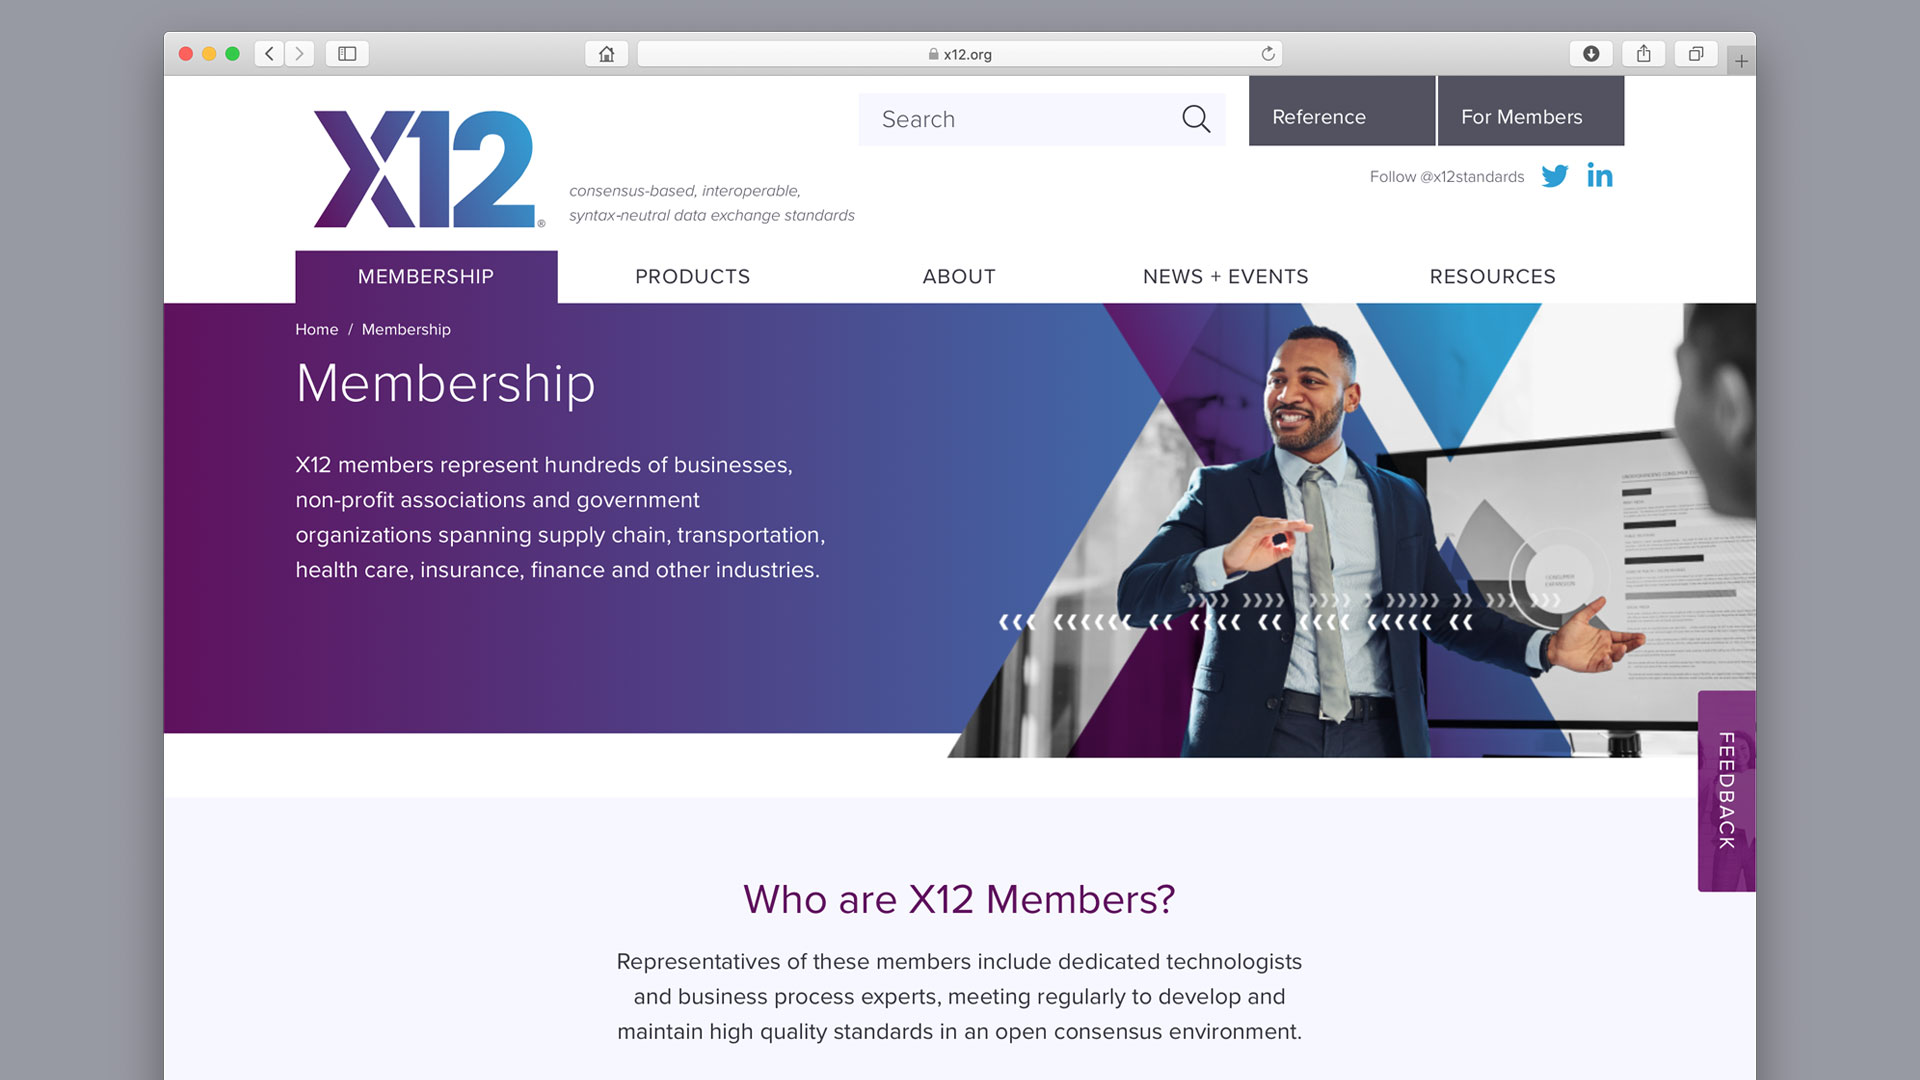 Screenshot of the X12 website Membership section landing page.